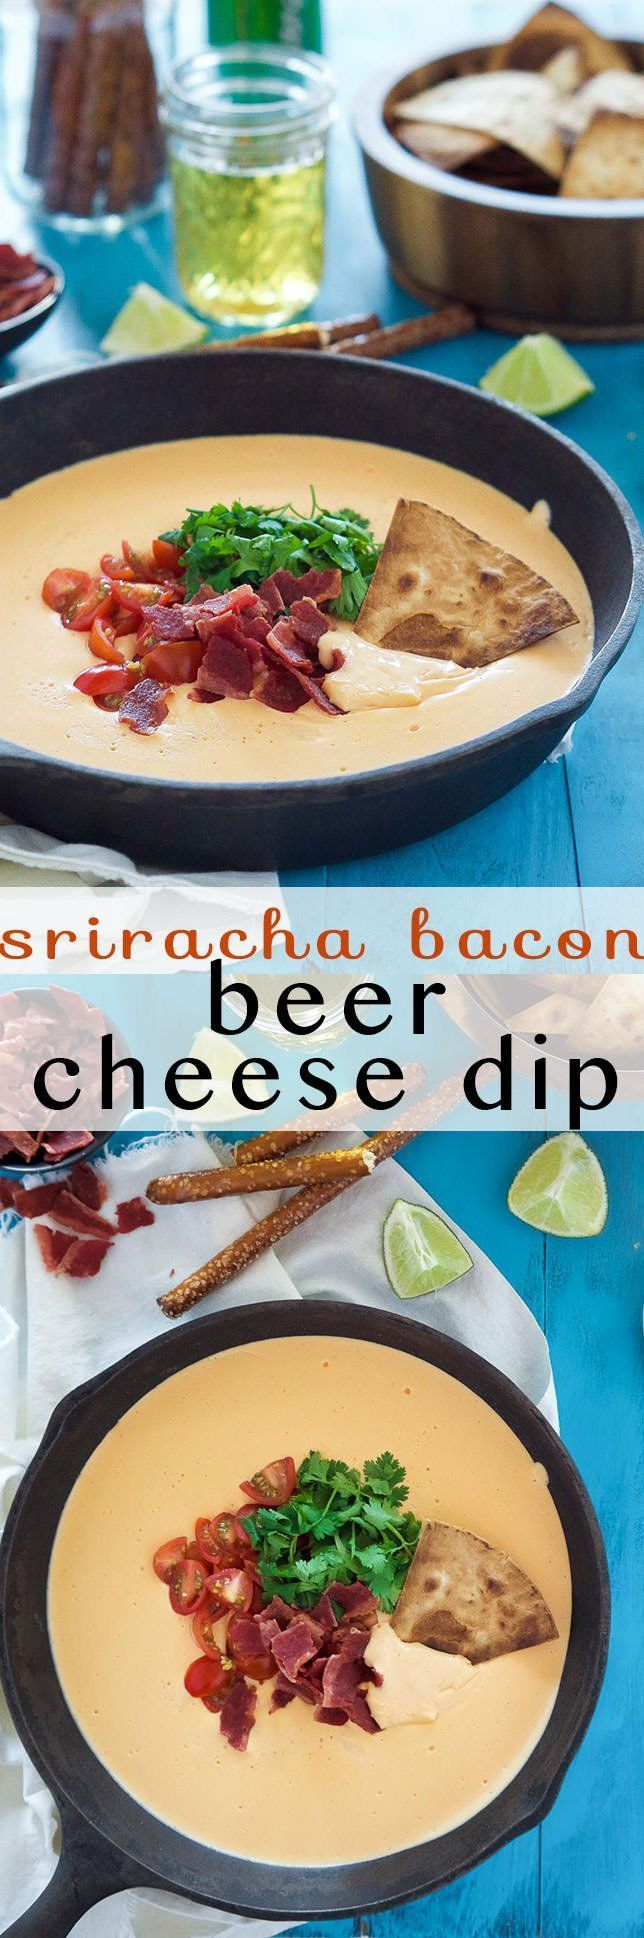 Sriracha Bacon Beer Cheese Dip is an irresistible, 4 ingredient appetizer that is creamy, cheesy, loaded with flavorful toppings and only takes only 15 minutes to make! It will be the hit at any party!